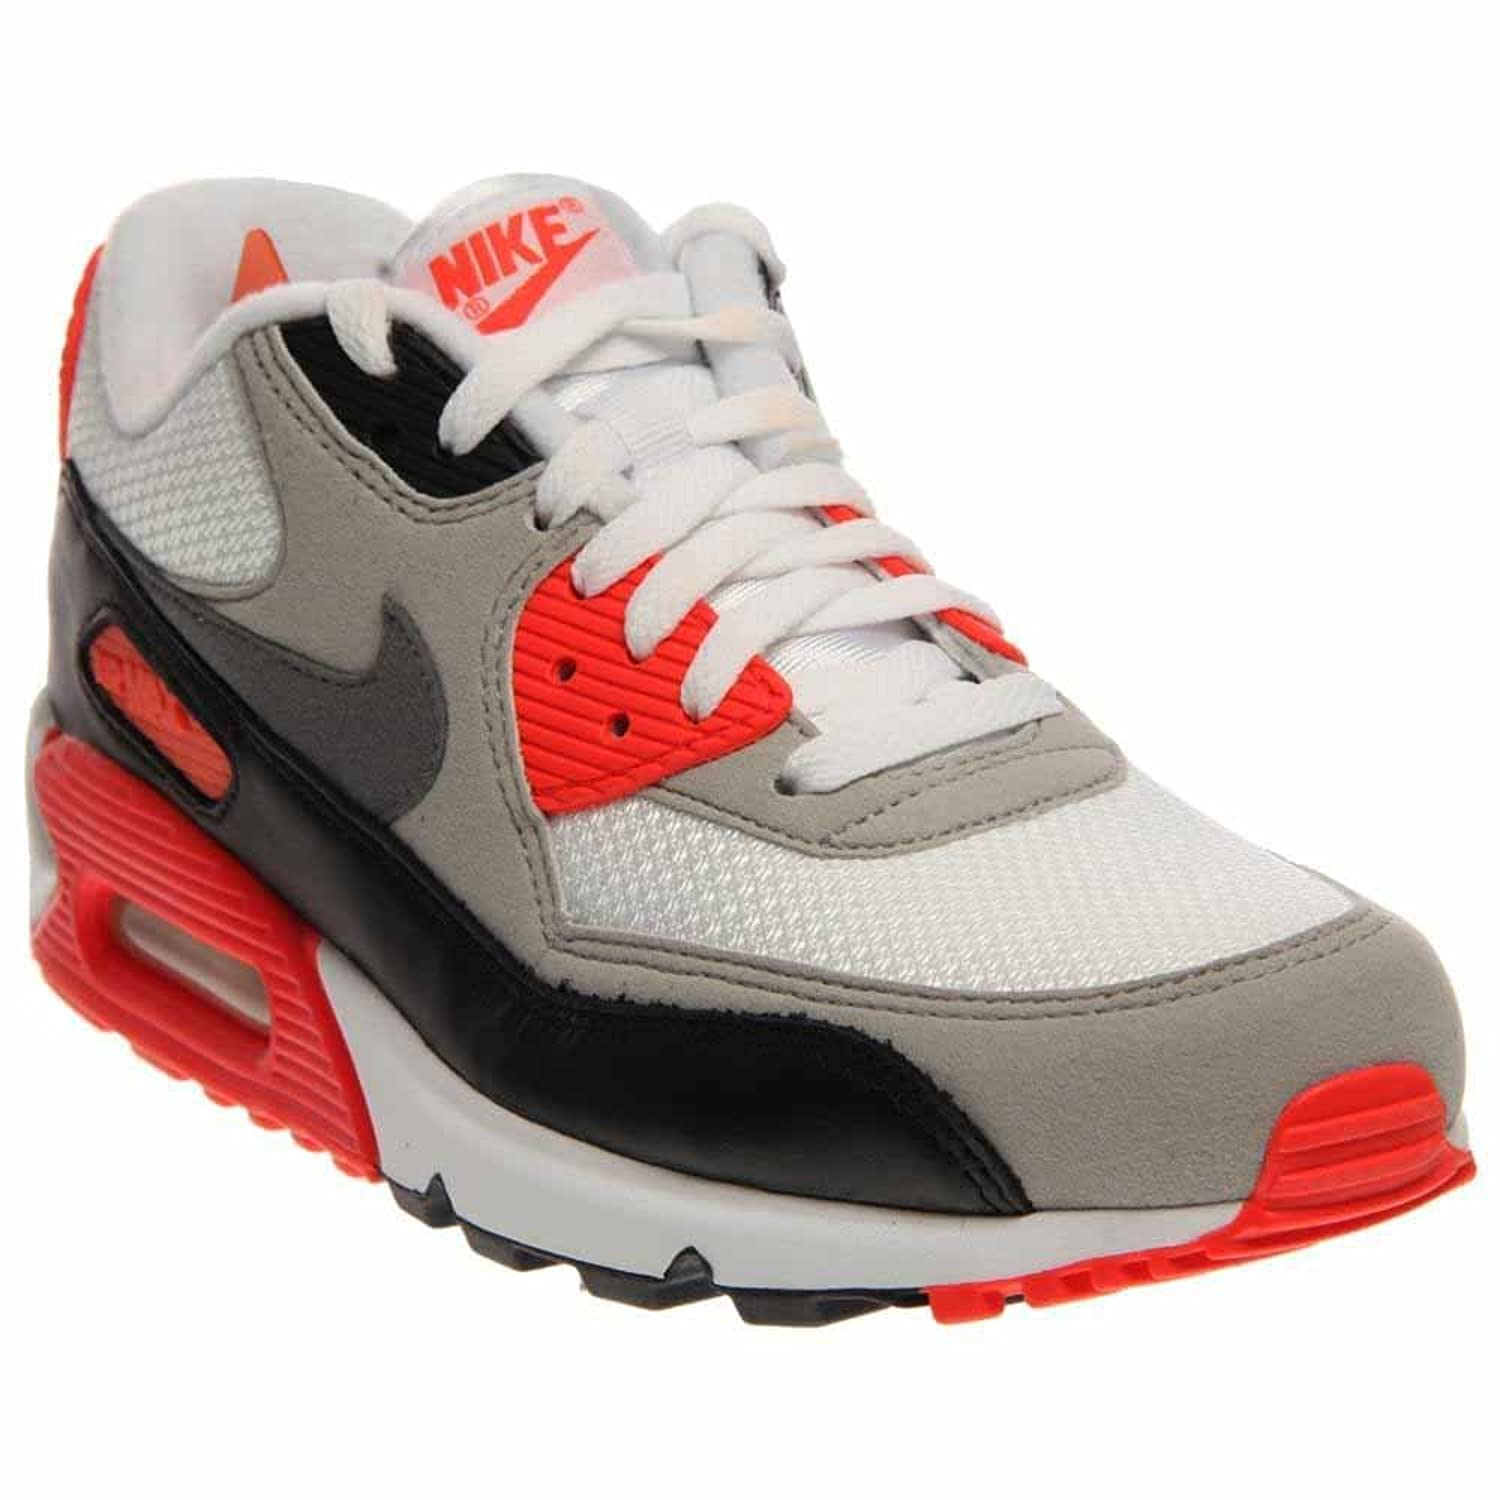 nike air max 90 OG mens trainers 725233 sneakers shoes